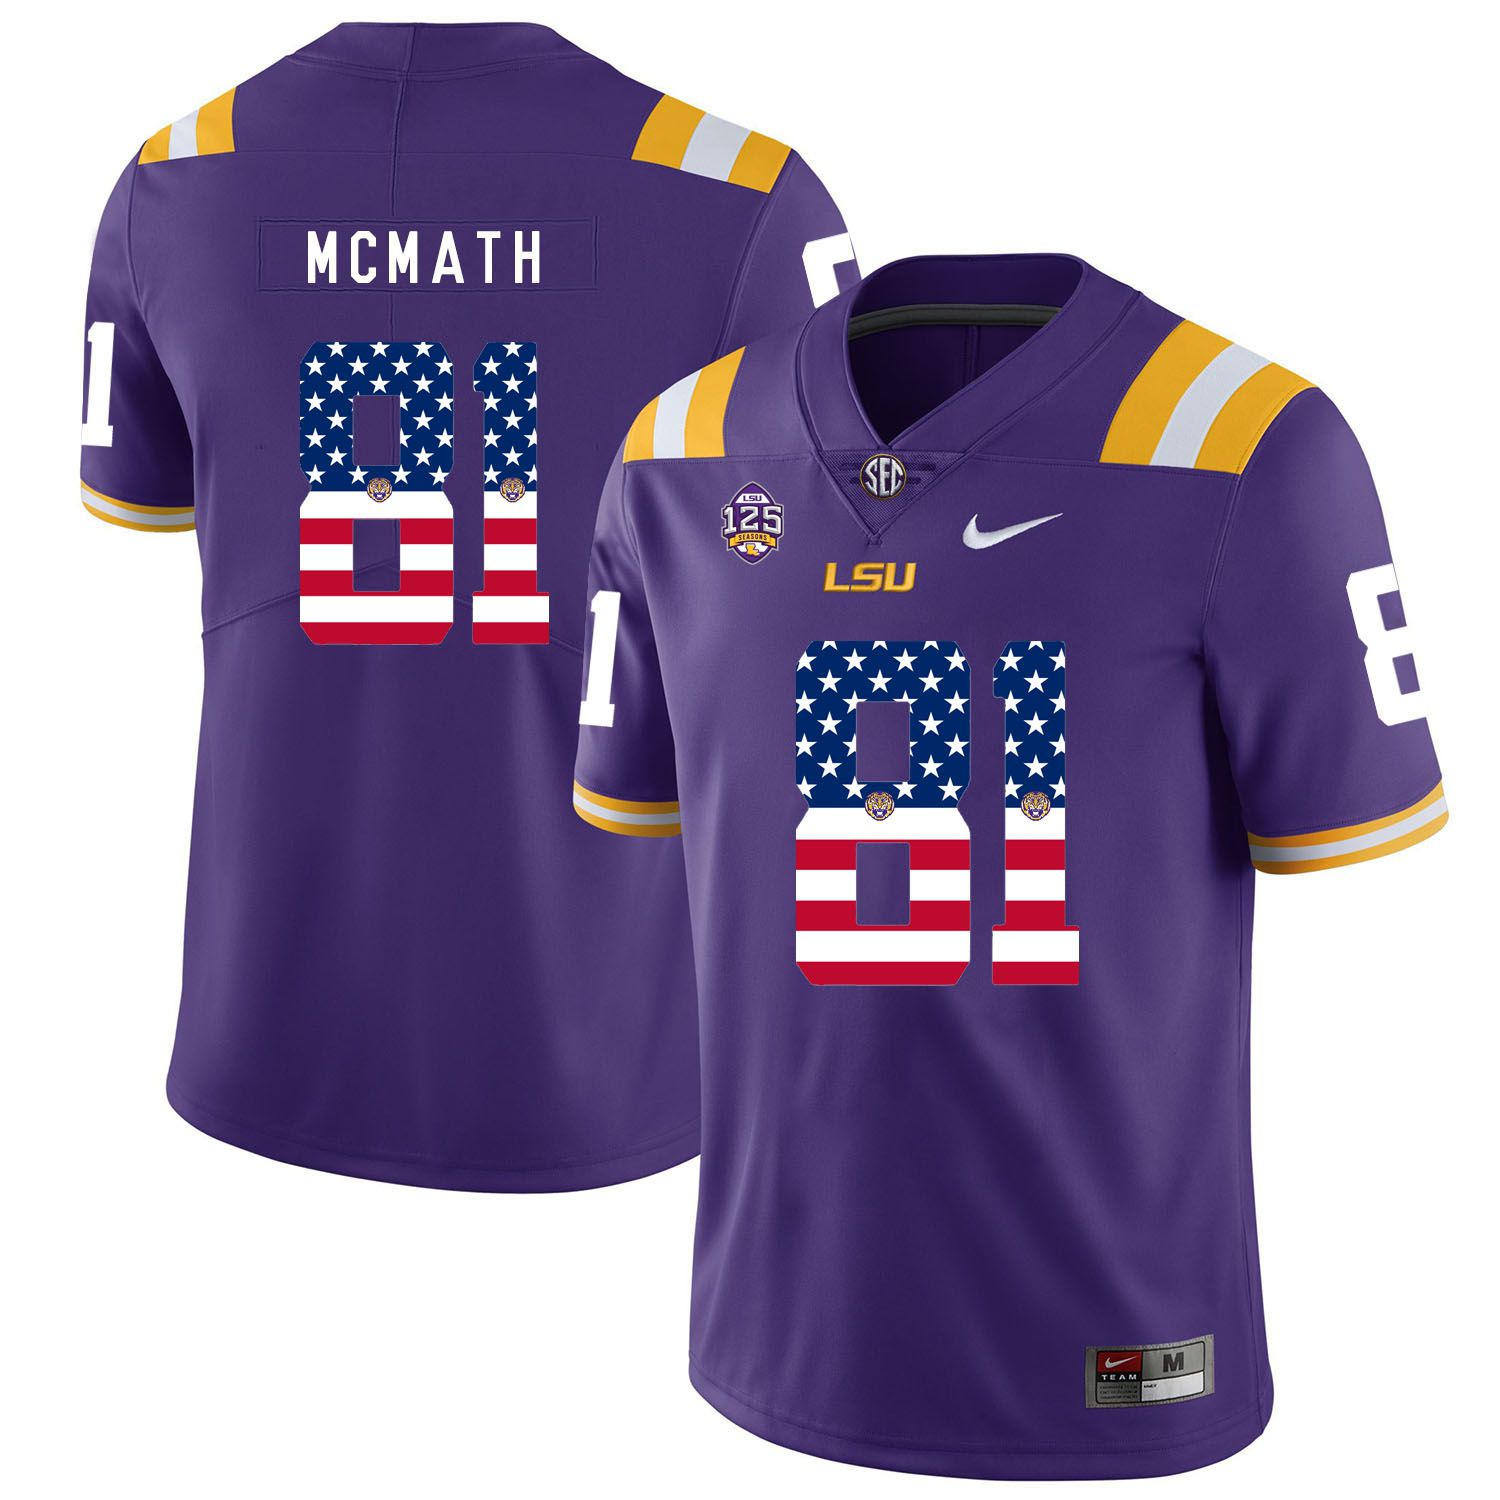 Men LSU Tigers 81 Mcmath Purple Flag Customized NCAA Jerseys